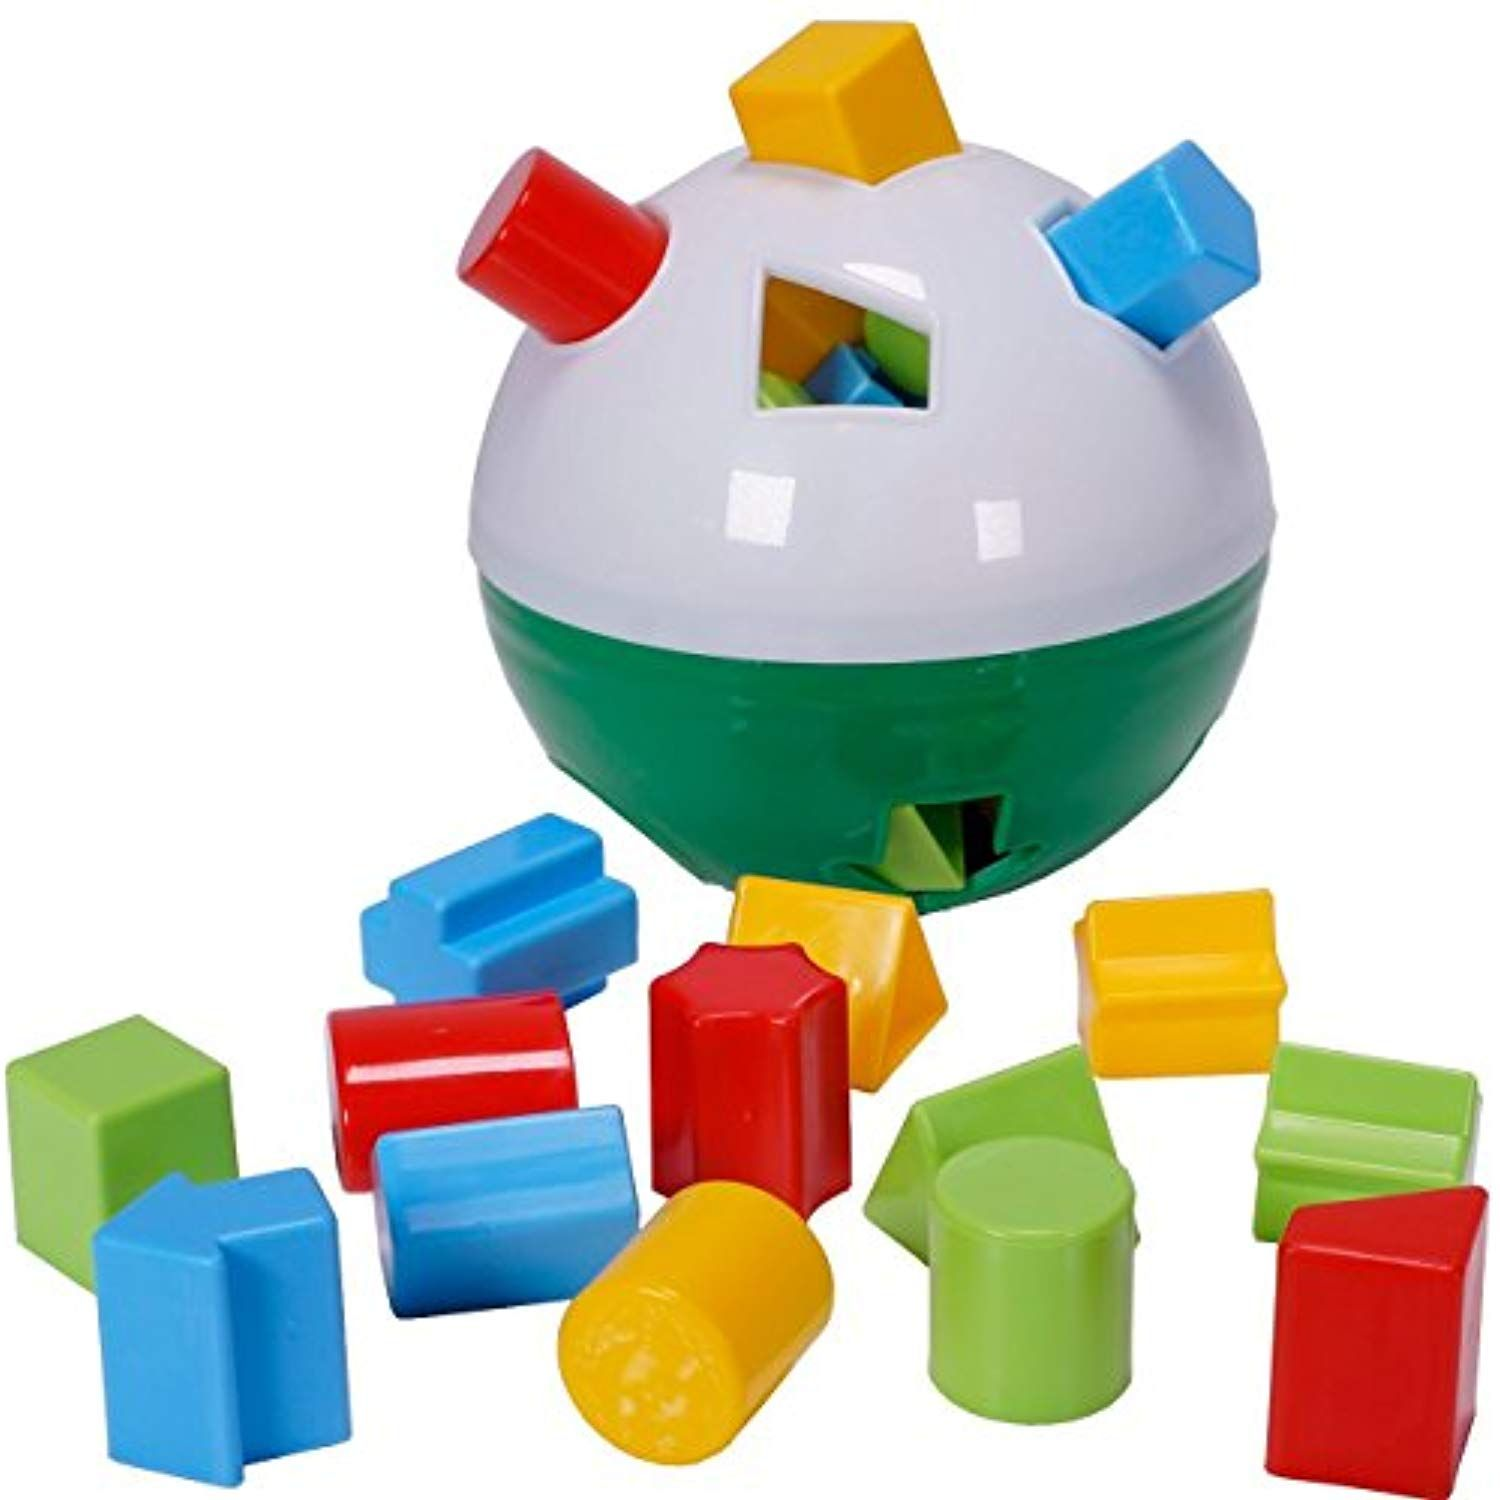 Ciftoys Educational Shape Sorter Ball Kids Toys